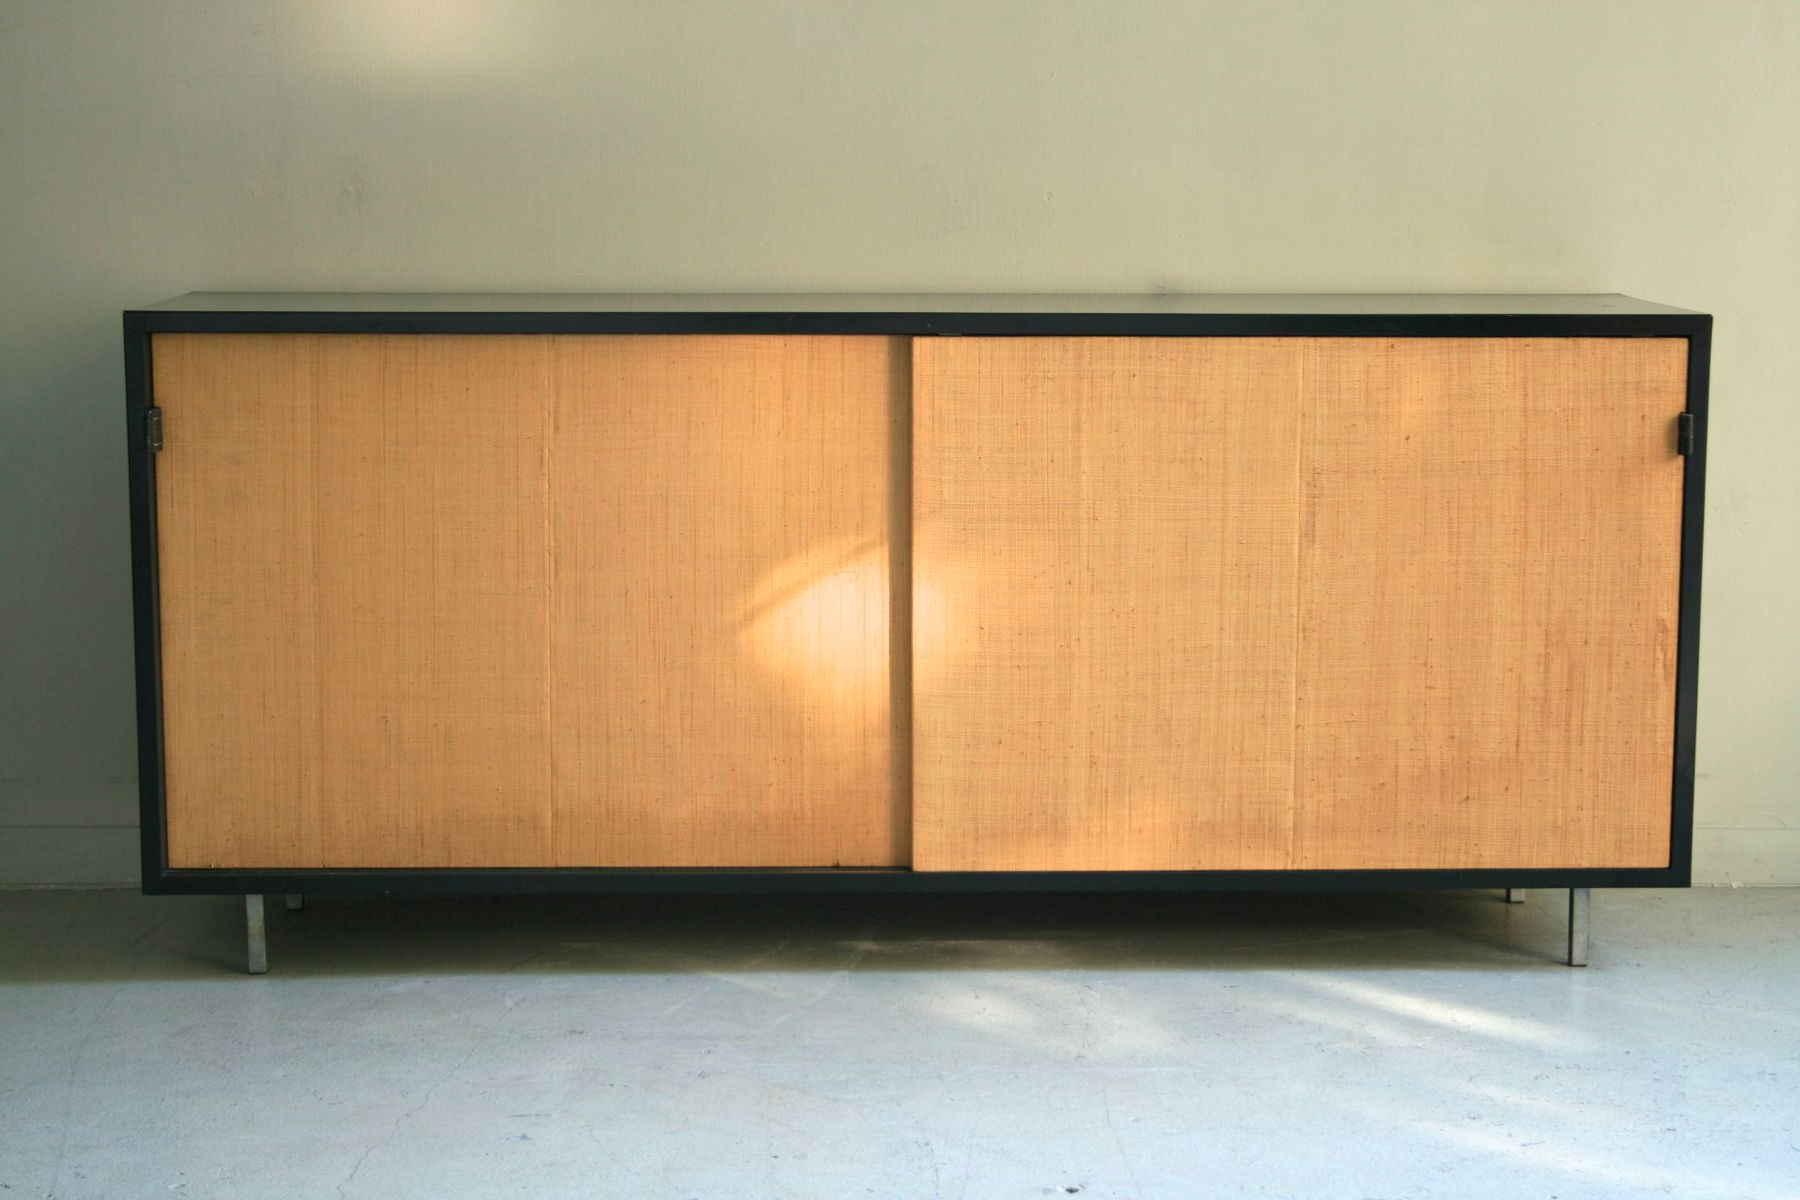 Girard 4 Door Sideboards With Regard To Preferred Sideboardcees Braakman & Florence Knoll For Knoll, 1960S For (View 17 of 20)